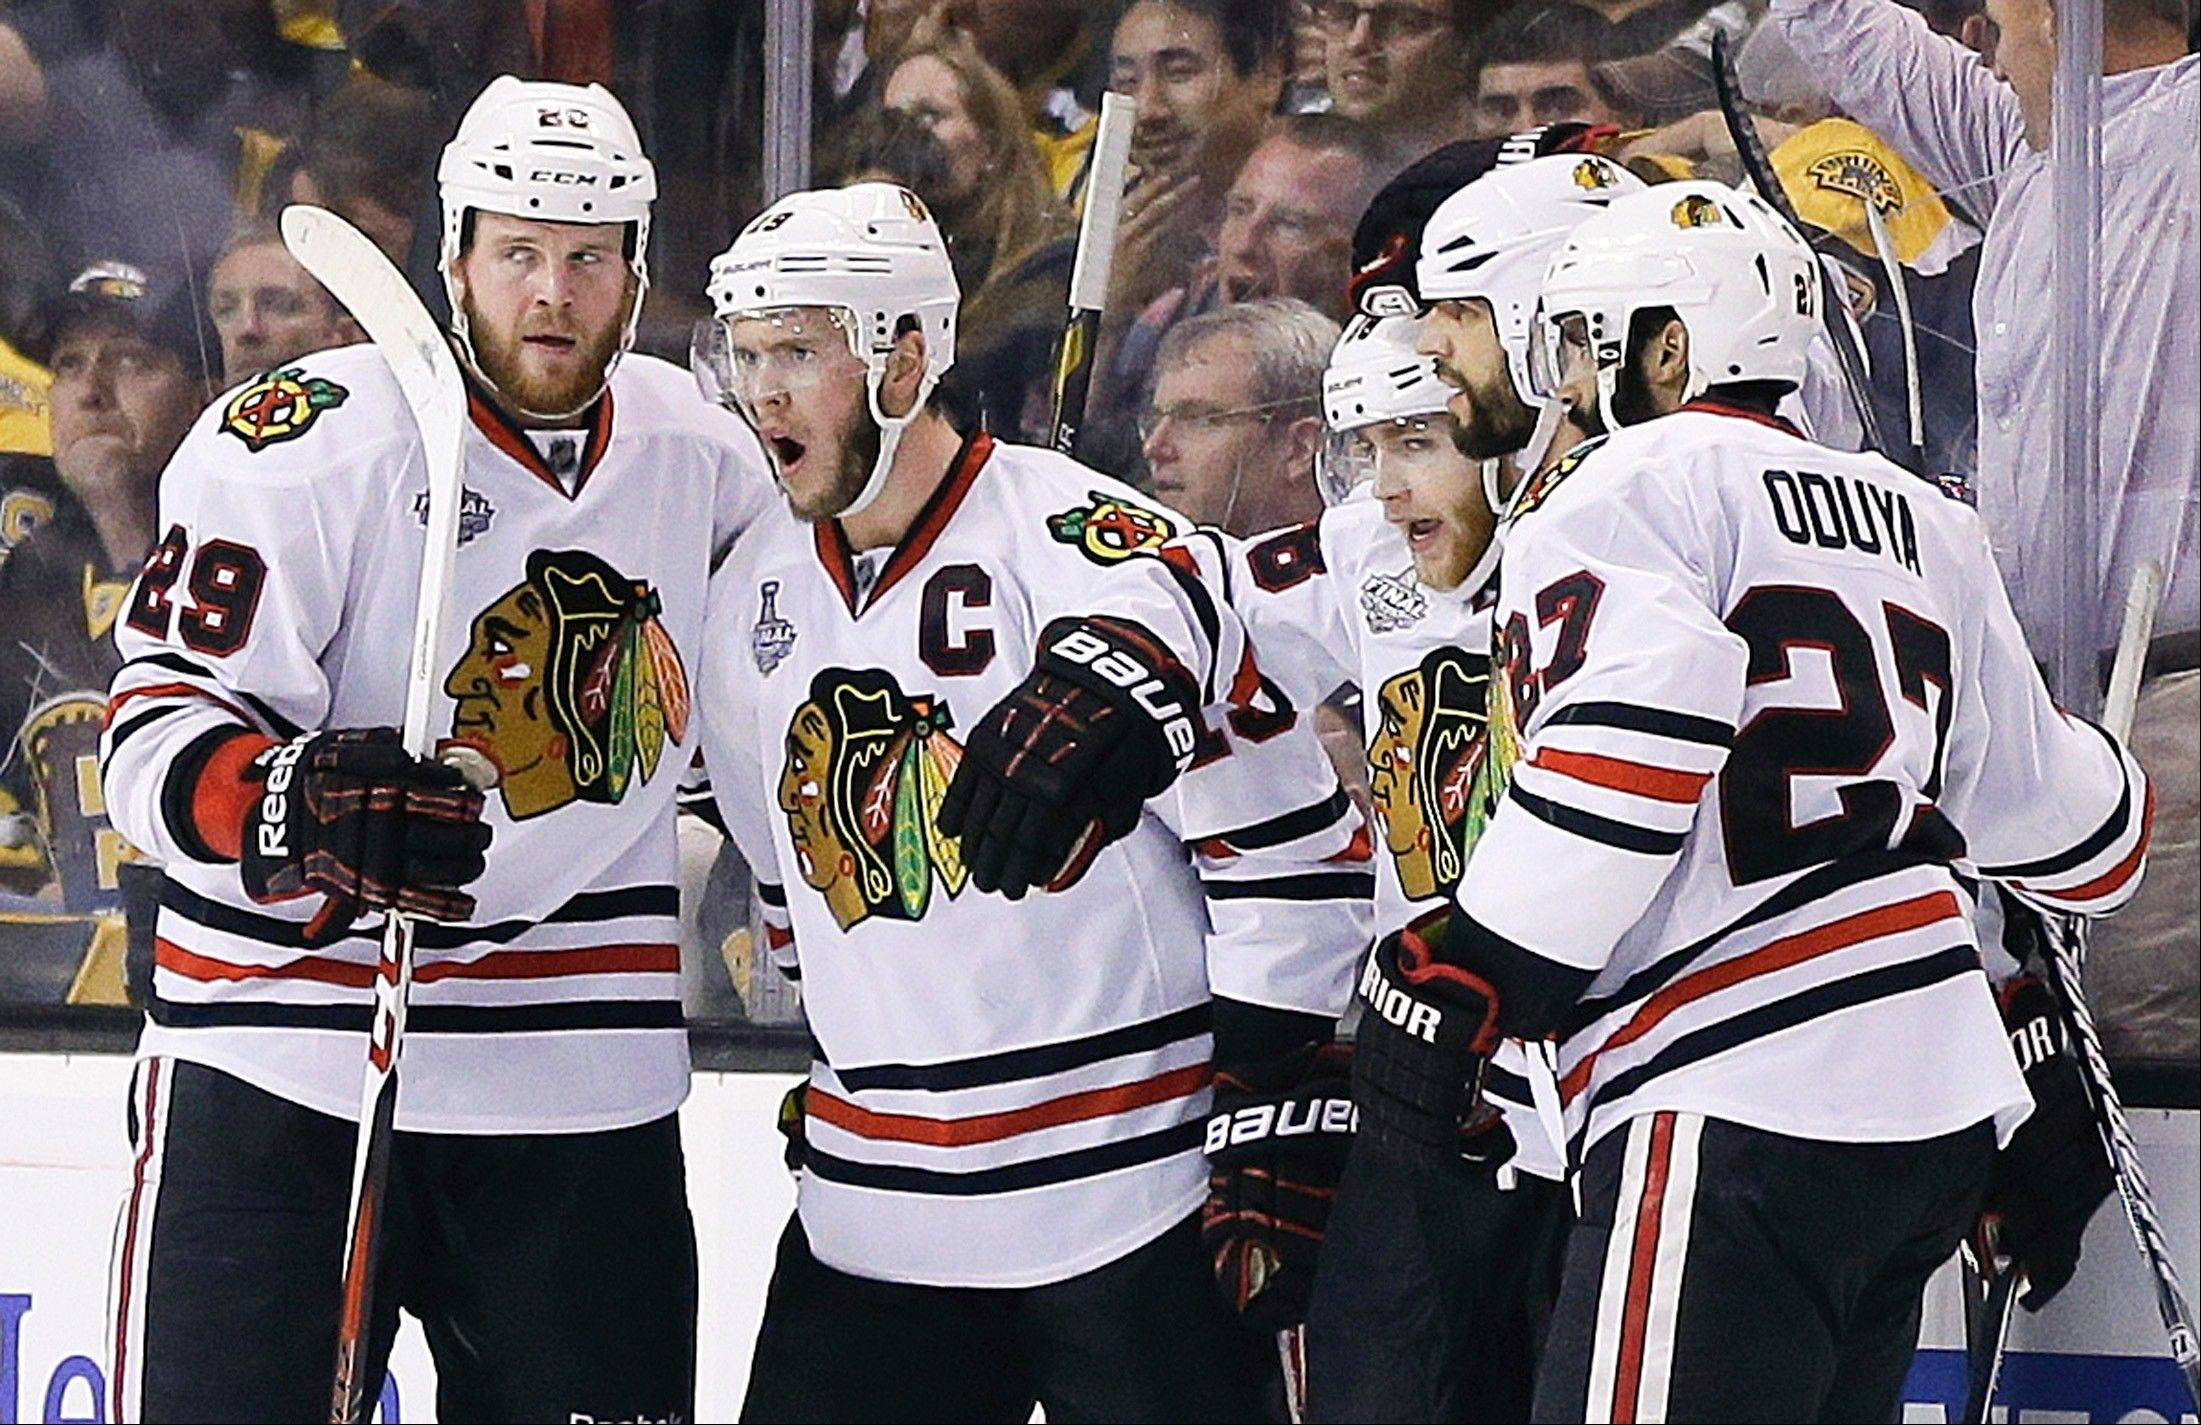 Chicago Blackhawks right wing Patrick Kane, second from right, celebrates his goal against the Boston Bruins with teammates during the second period in Game 4 of the NHL hockey Stanley Cup Finals.